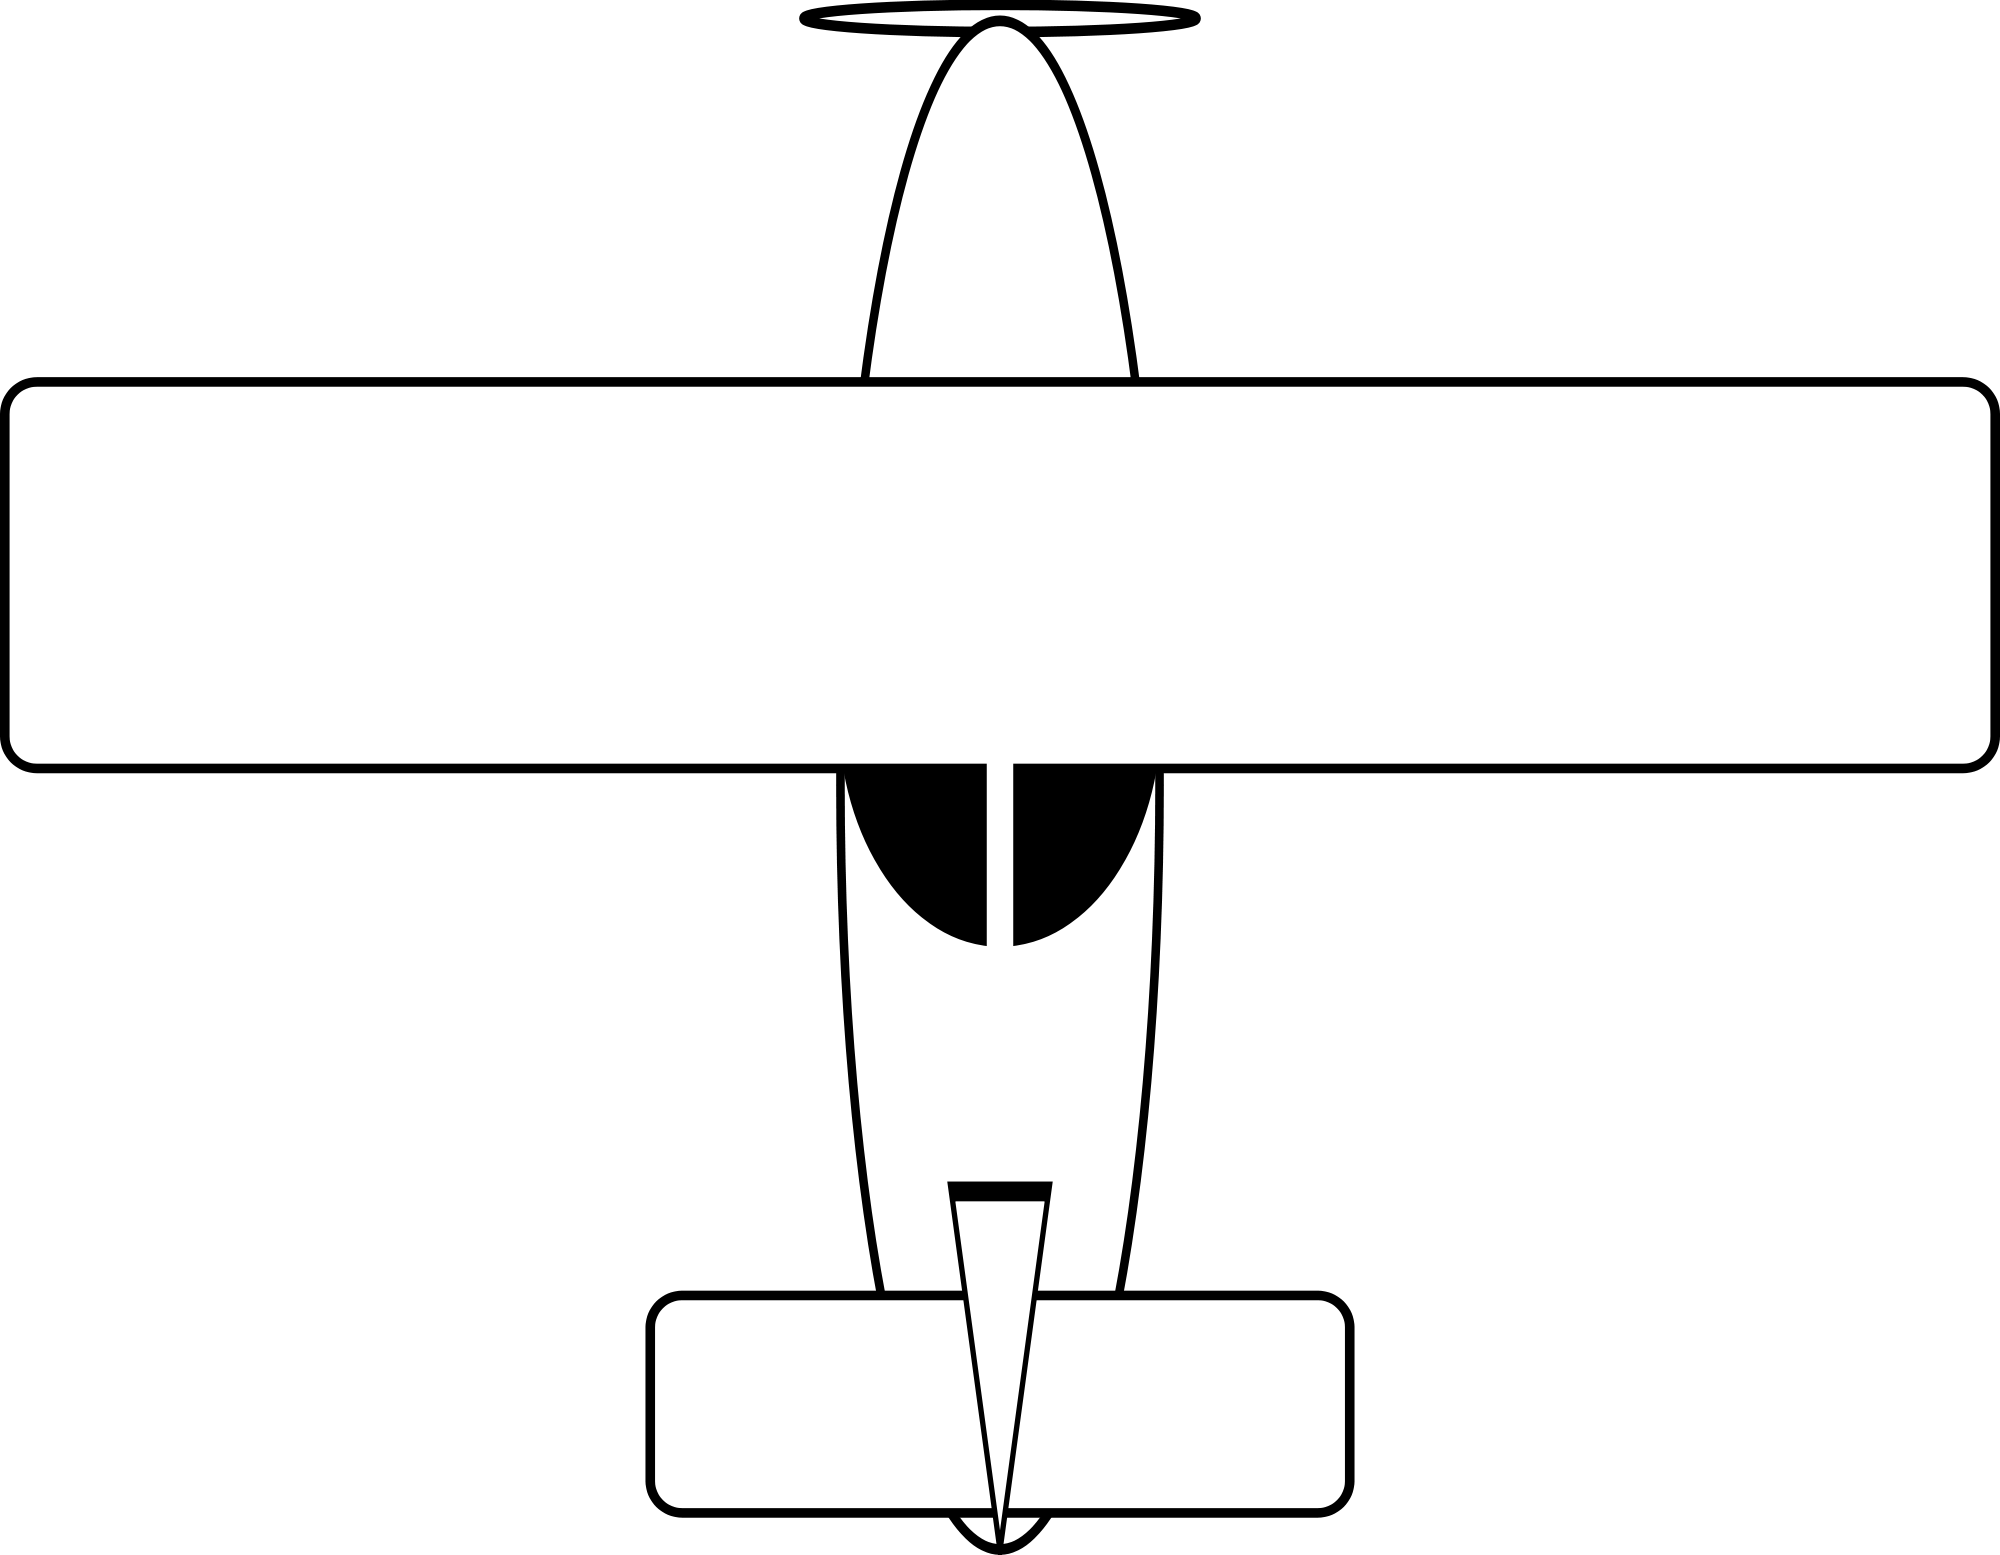 2000x1555 Fileairplane Drawing.svg